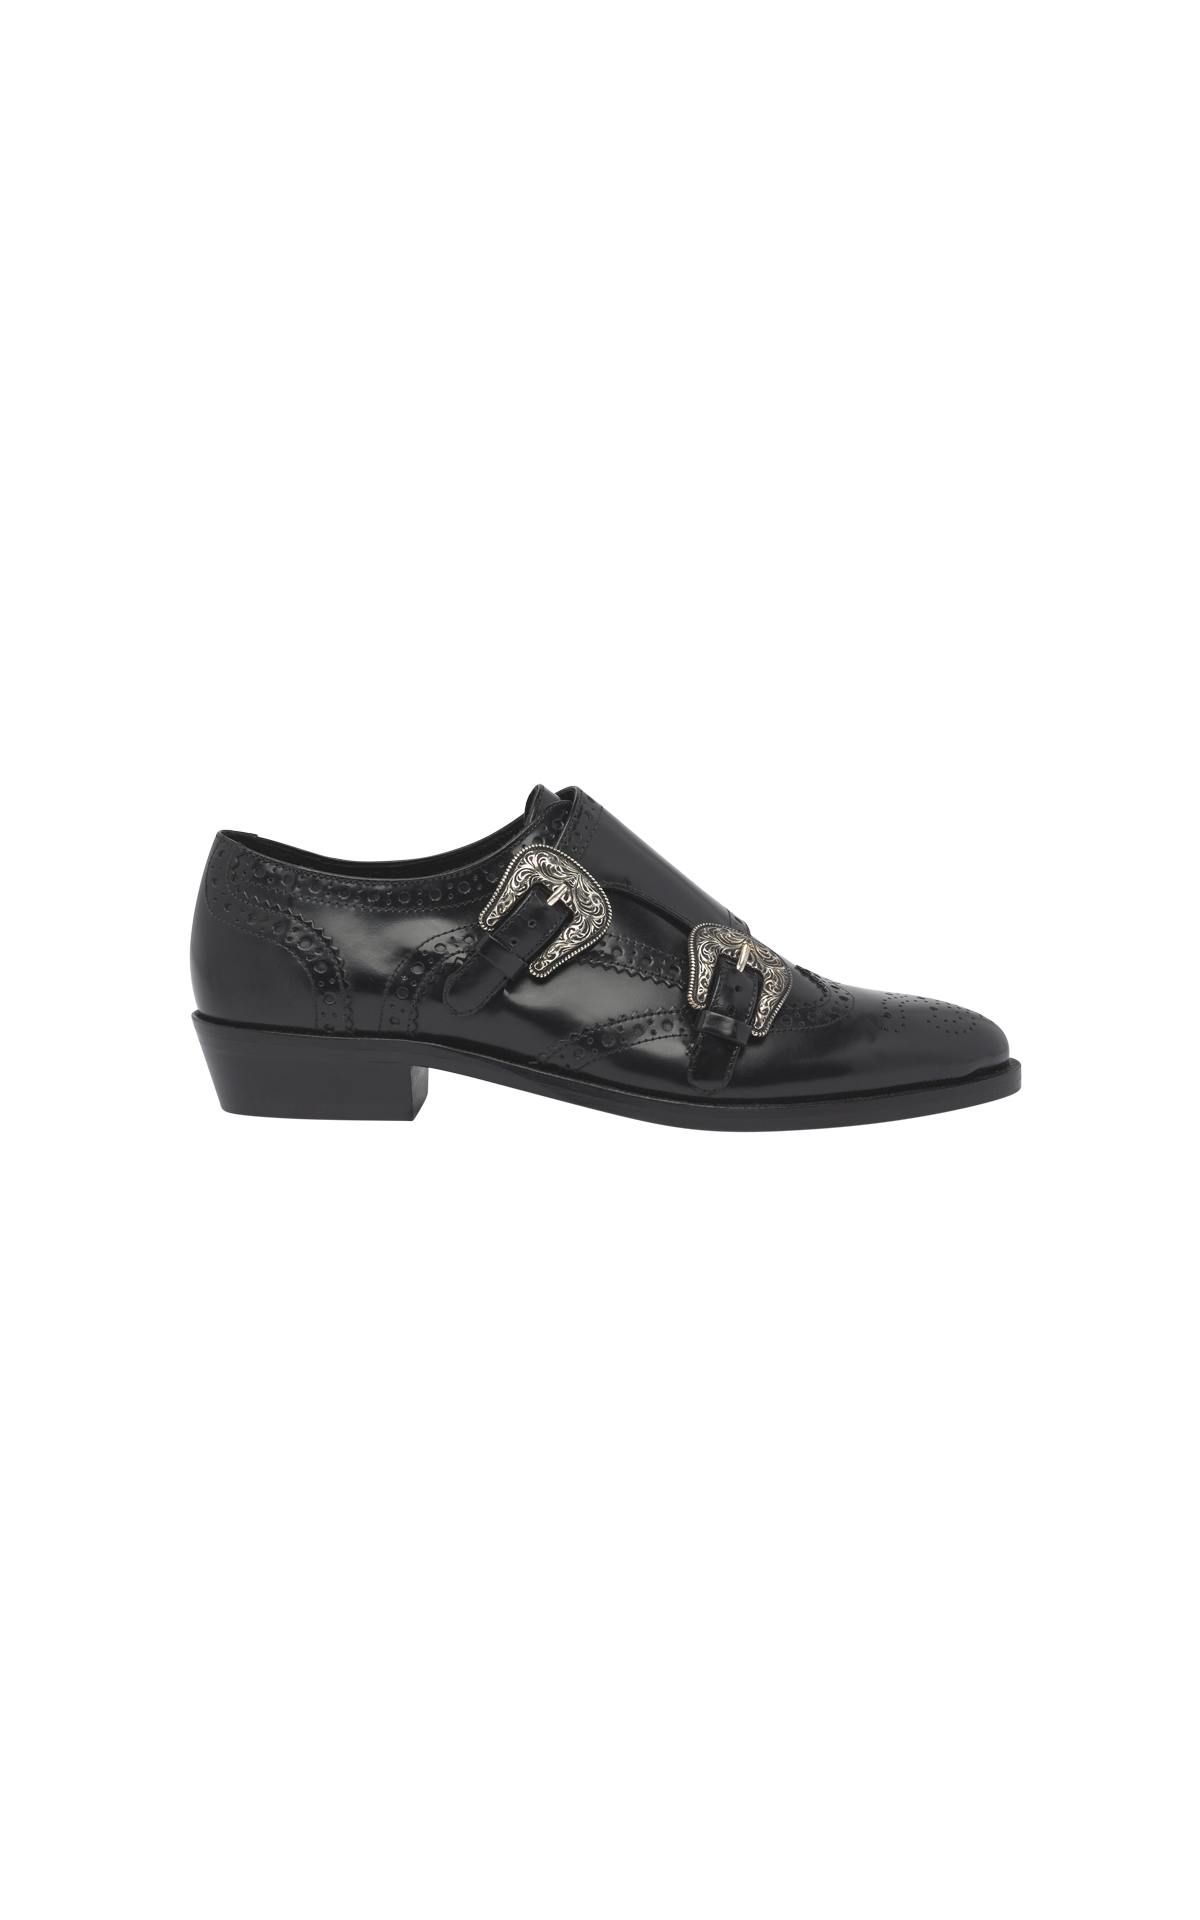 Zapato negro hebillas The Kooples